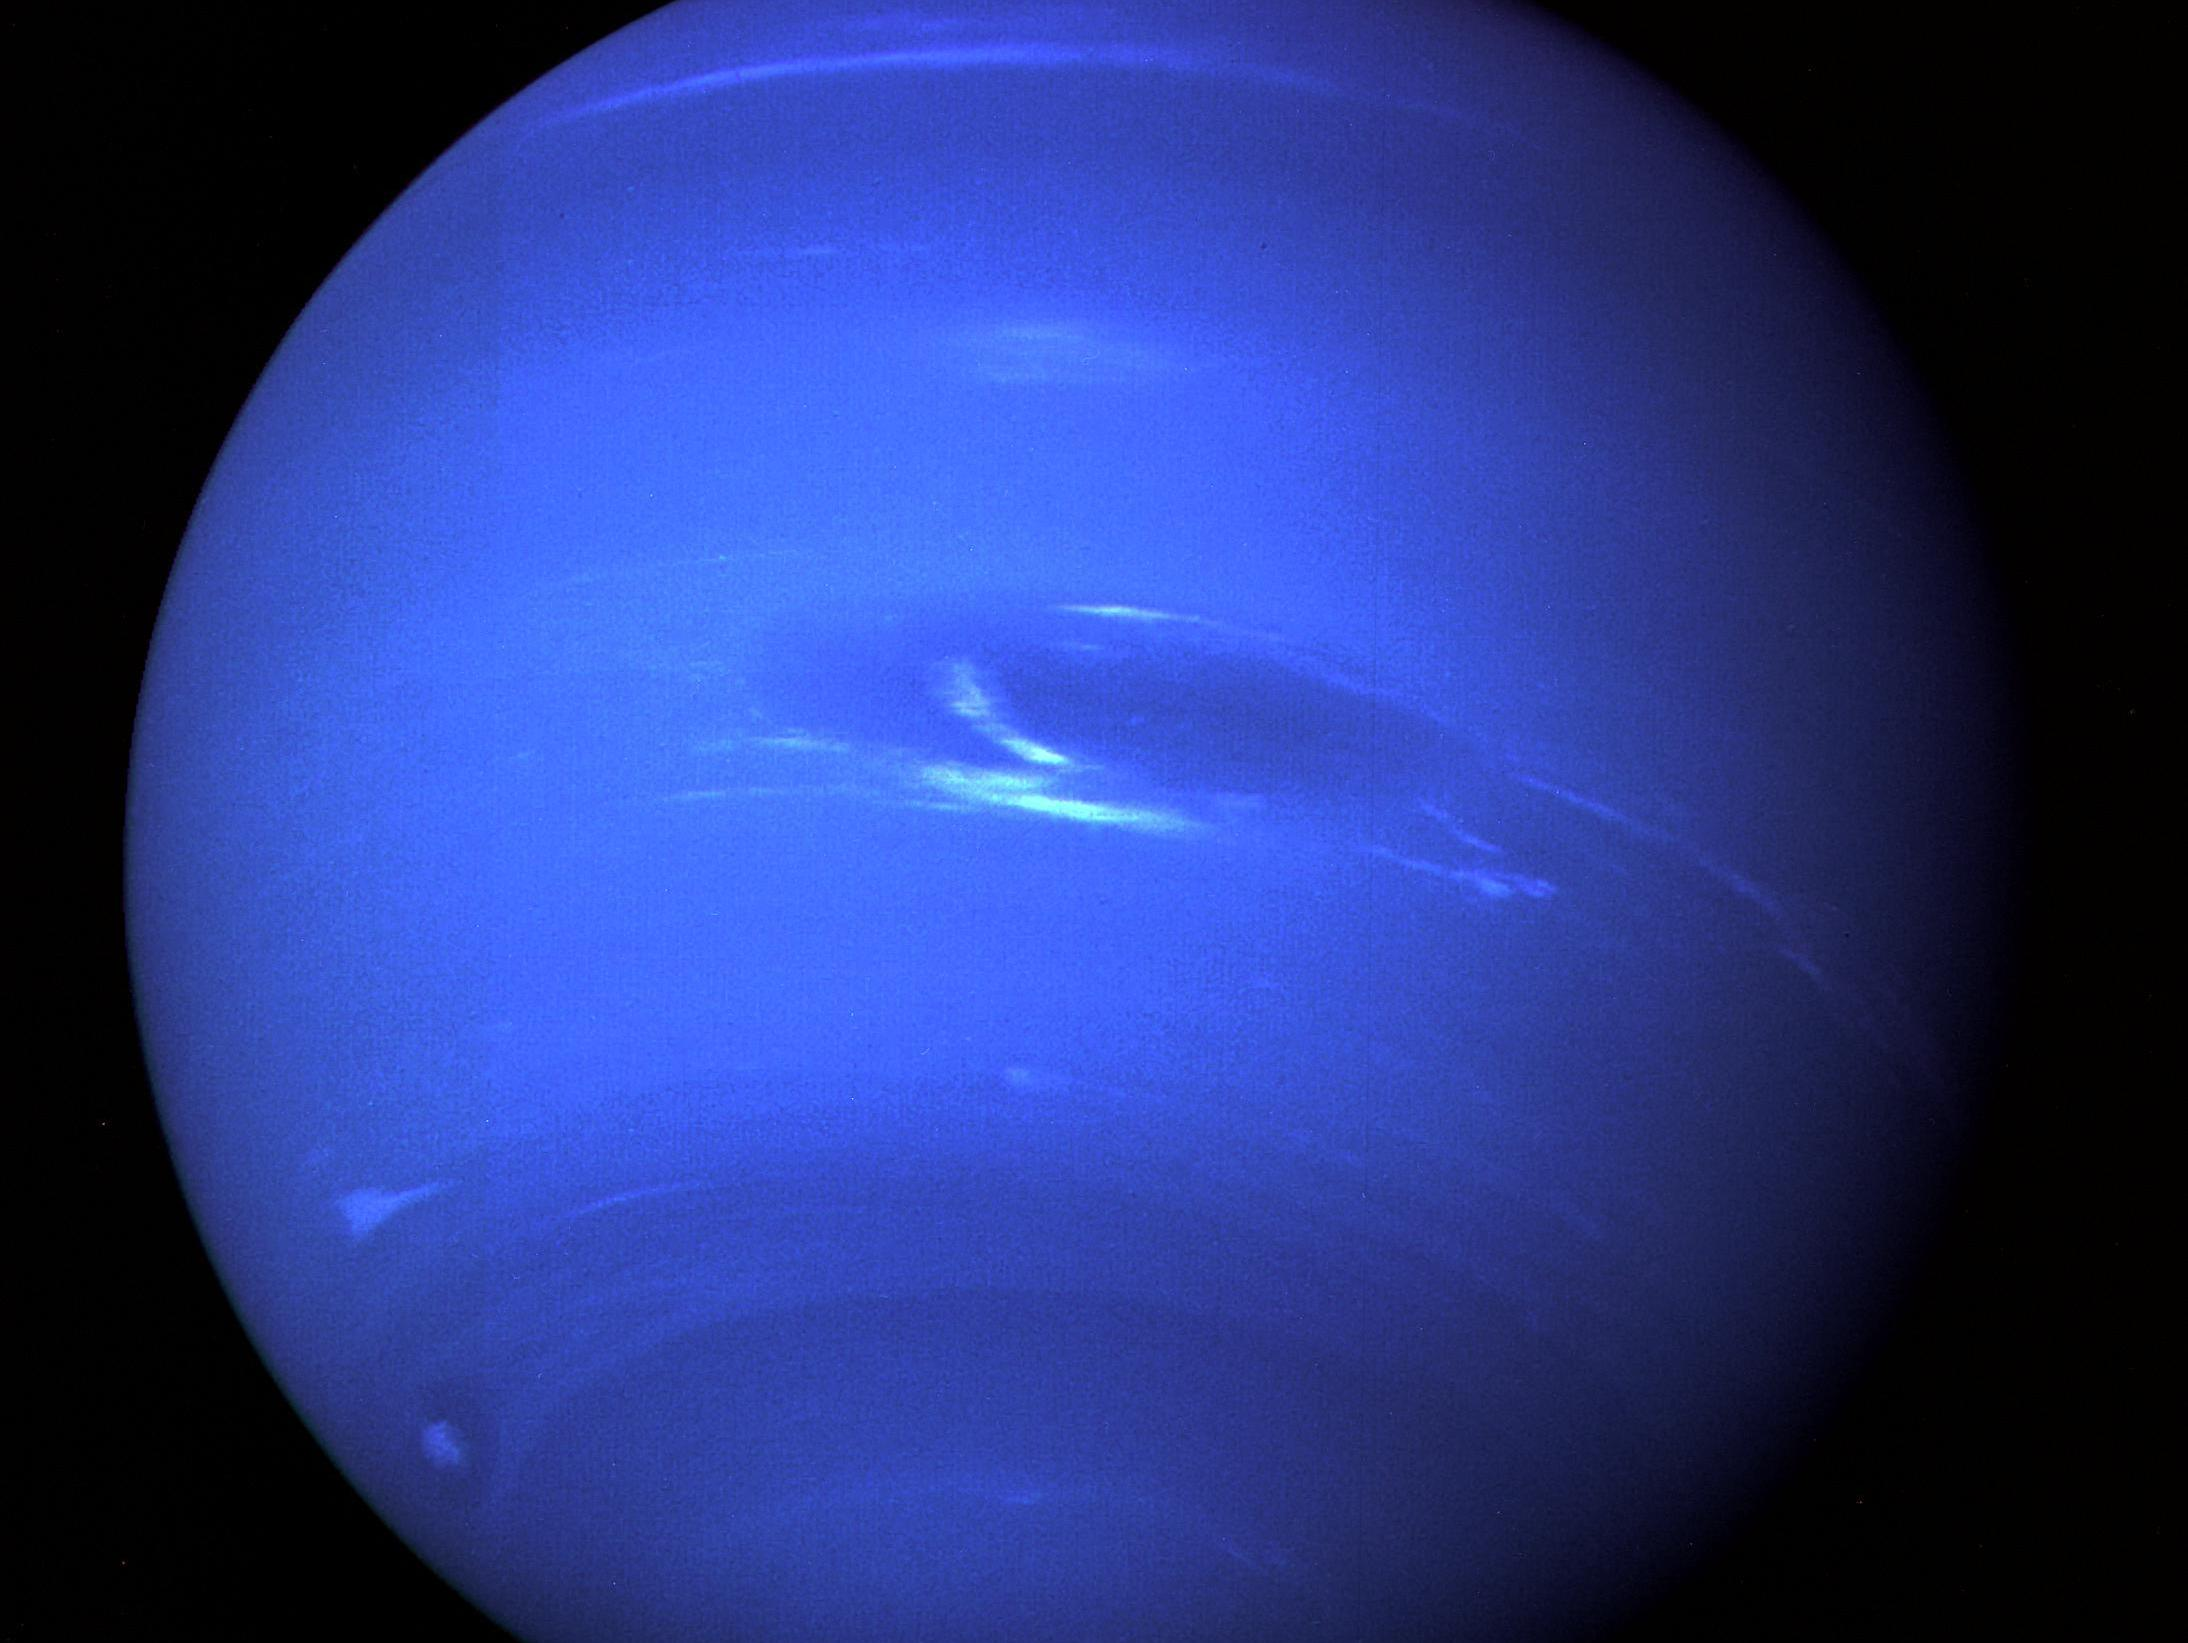 New Moon Found Orbiting Neptune, But What To Call It?